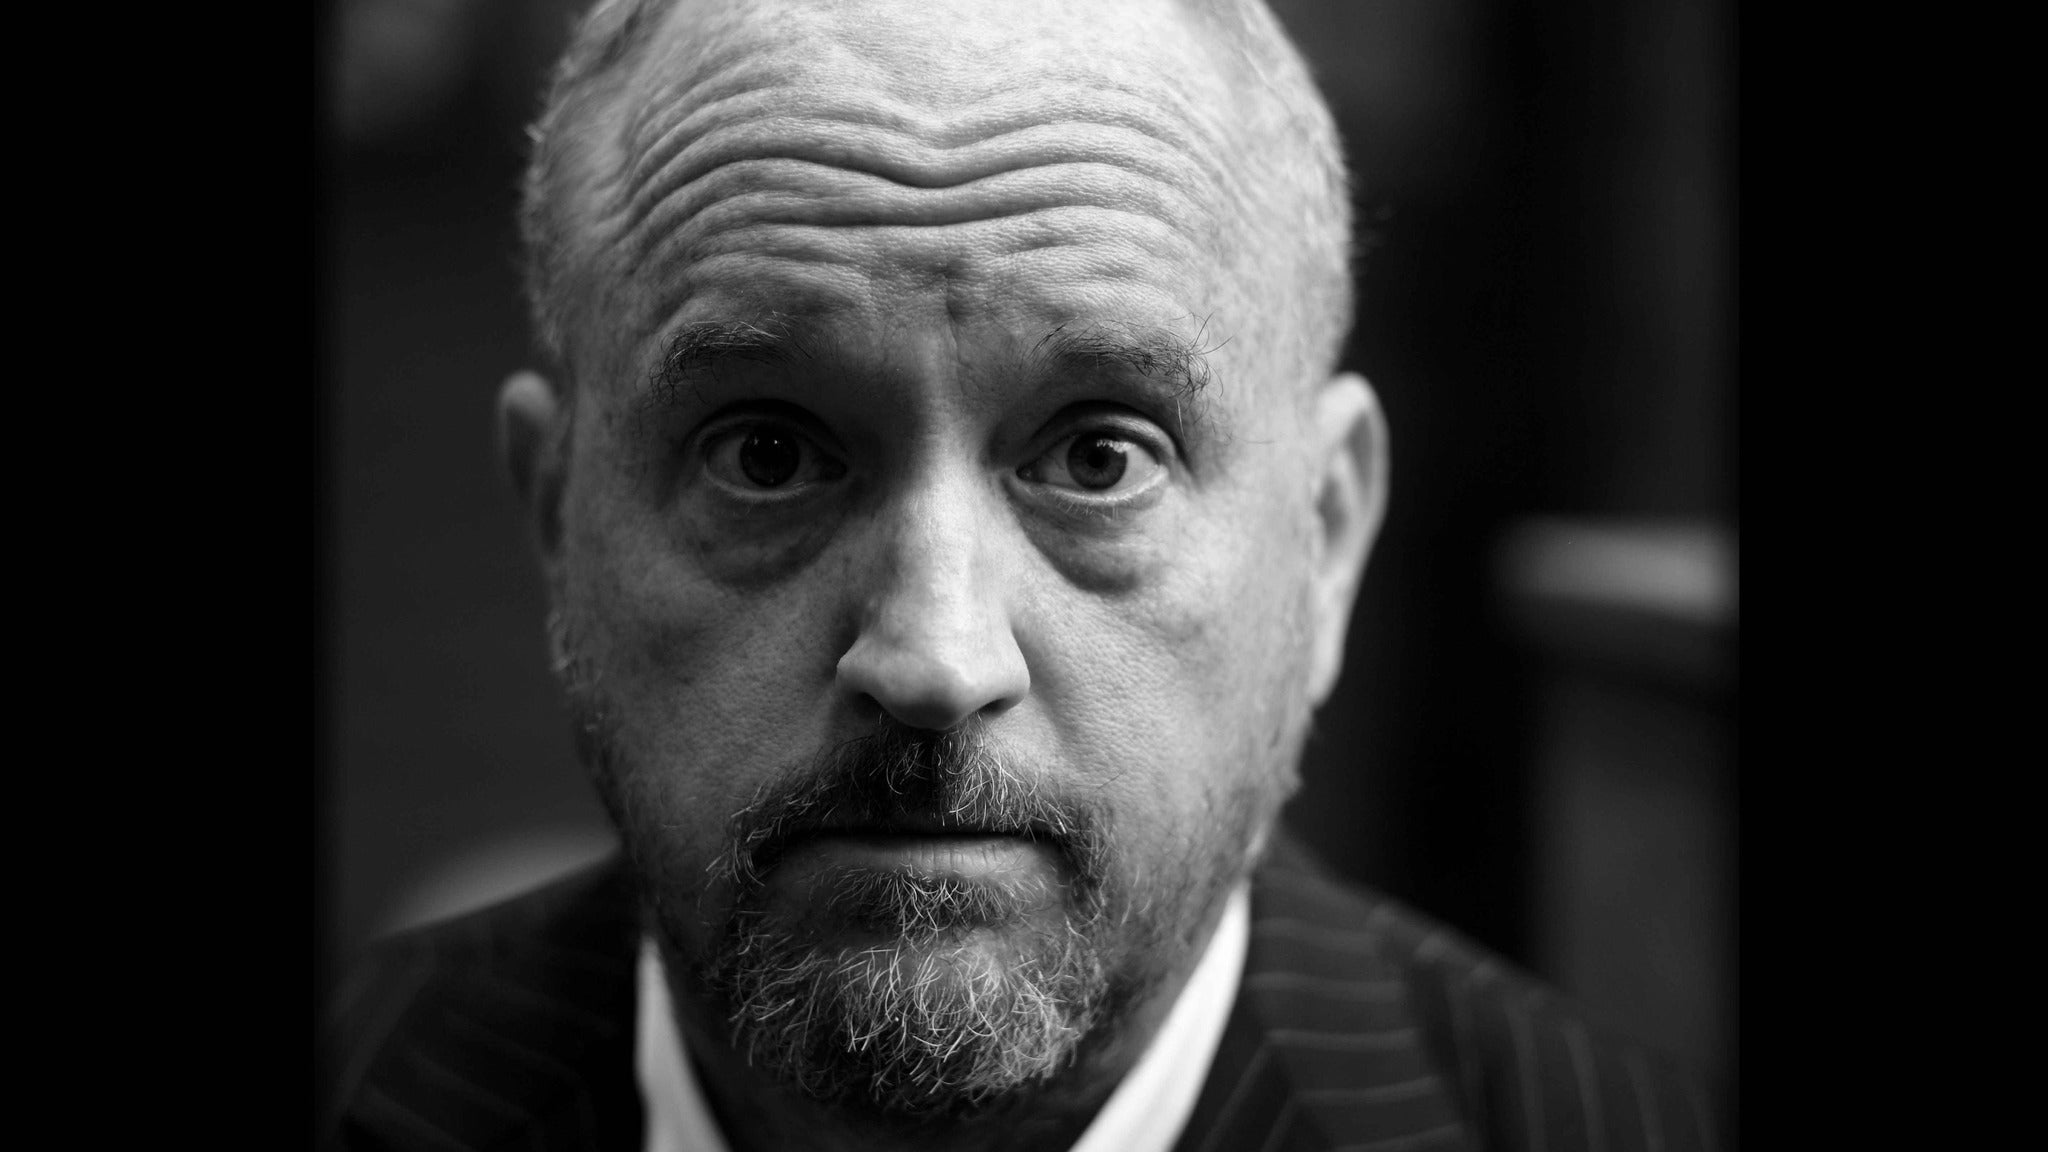 Louis C.K. at Dolby Theatre - Hollywood, CA 90028